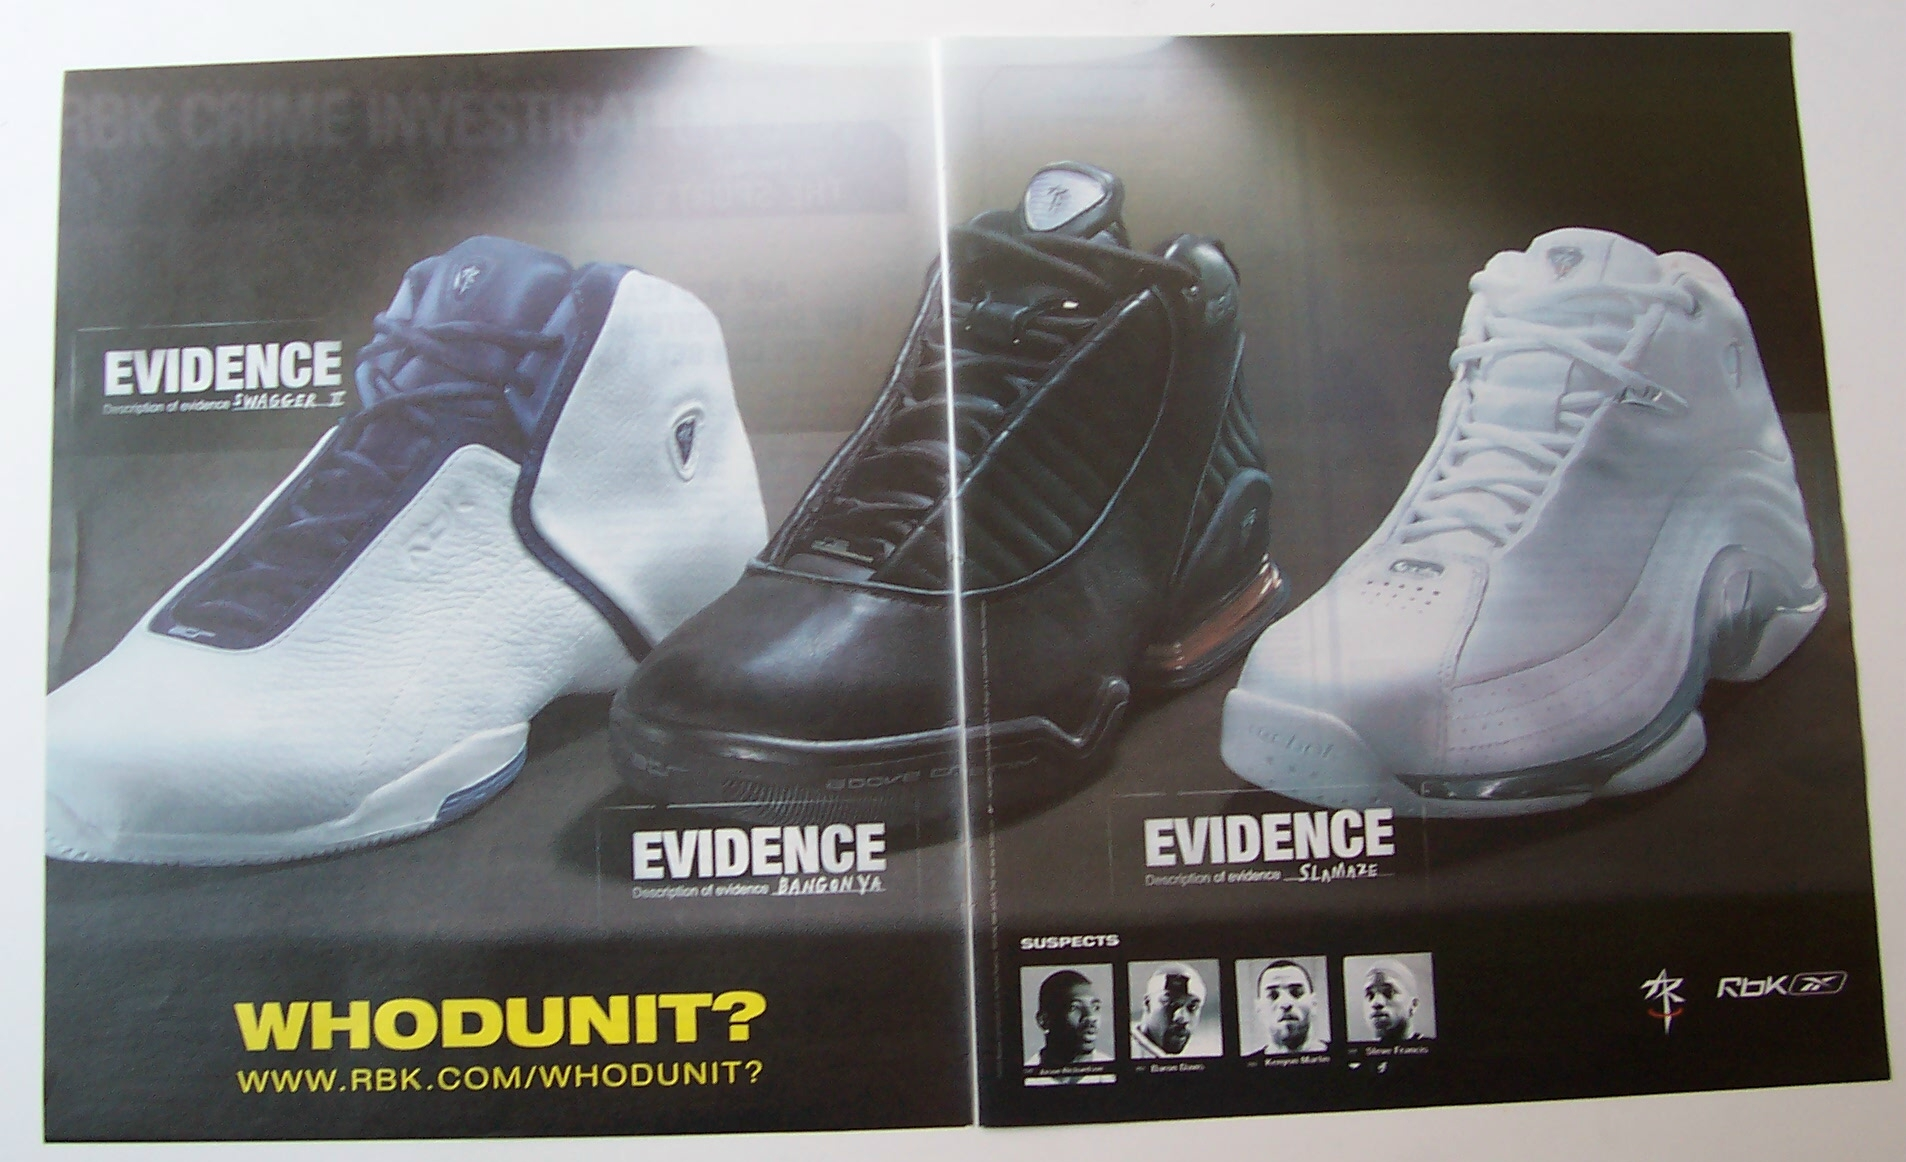 91d12886fa2 2003 Reebok with Steve Francis, Baron Davis & Others (Clothing) at Ads By  Dee